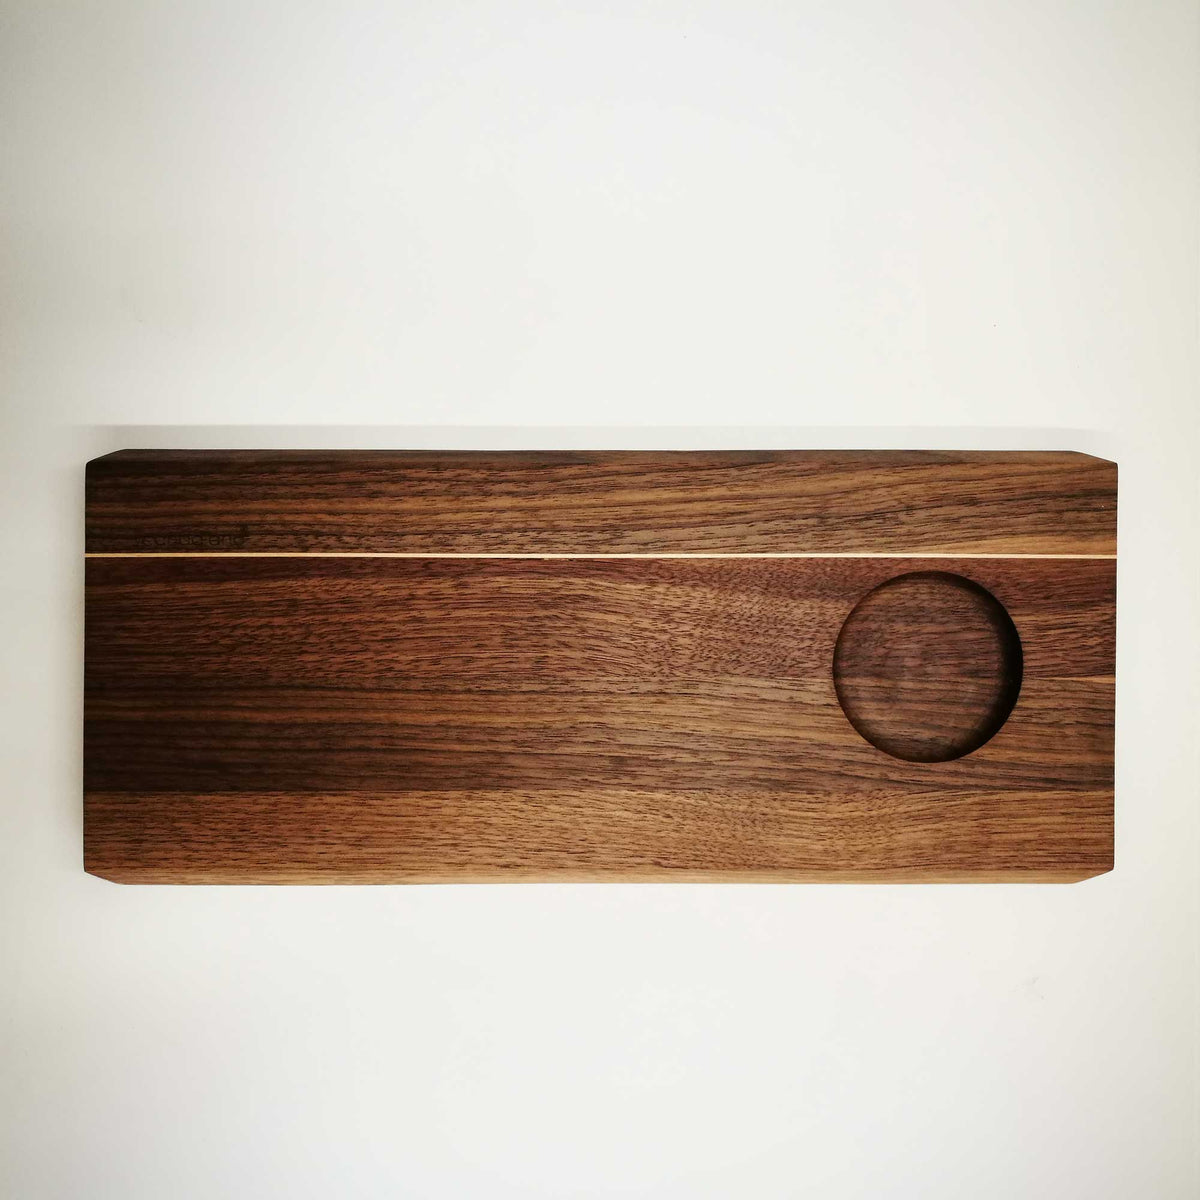 Serving Boards